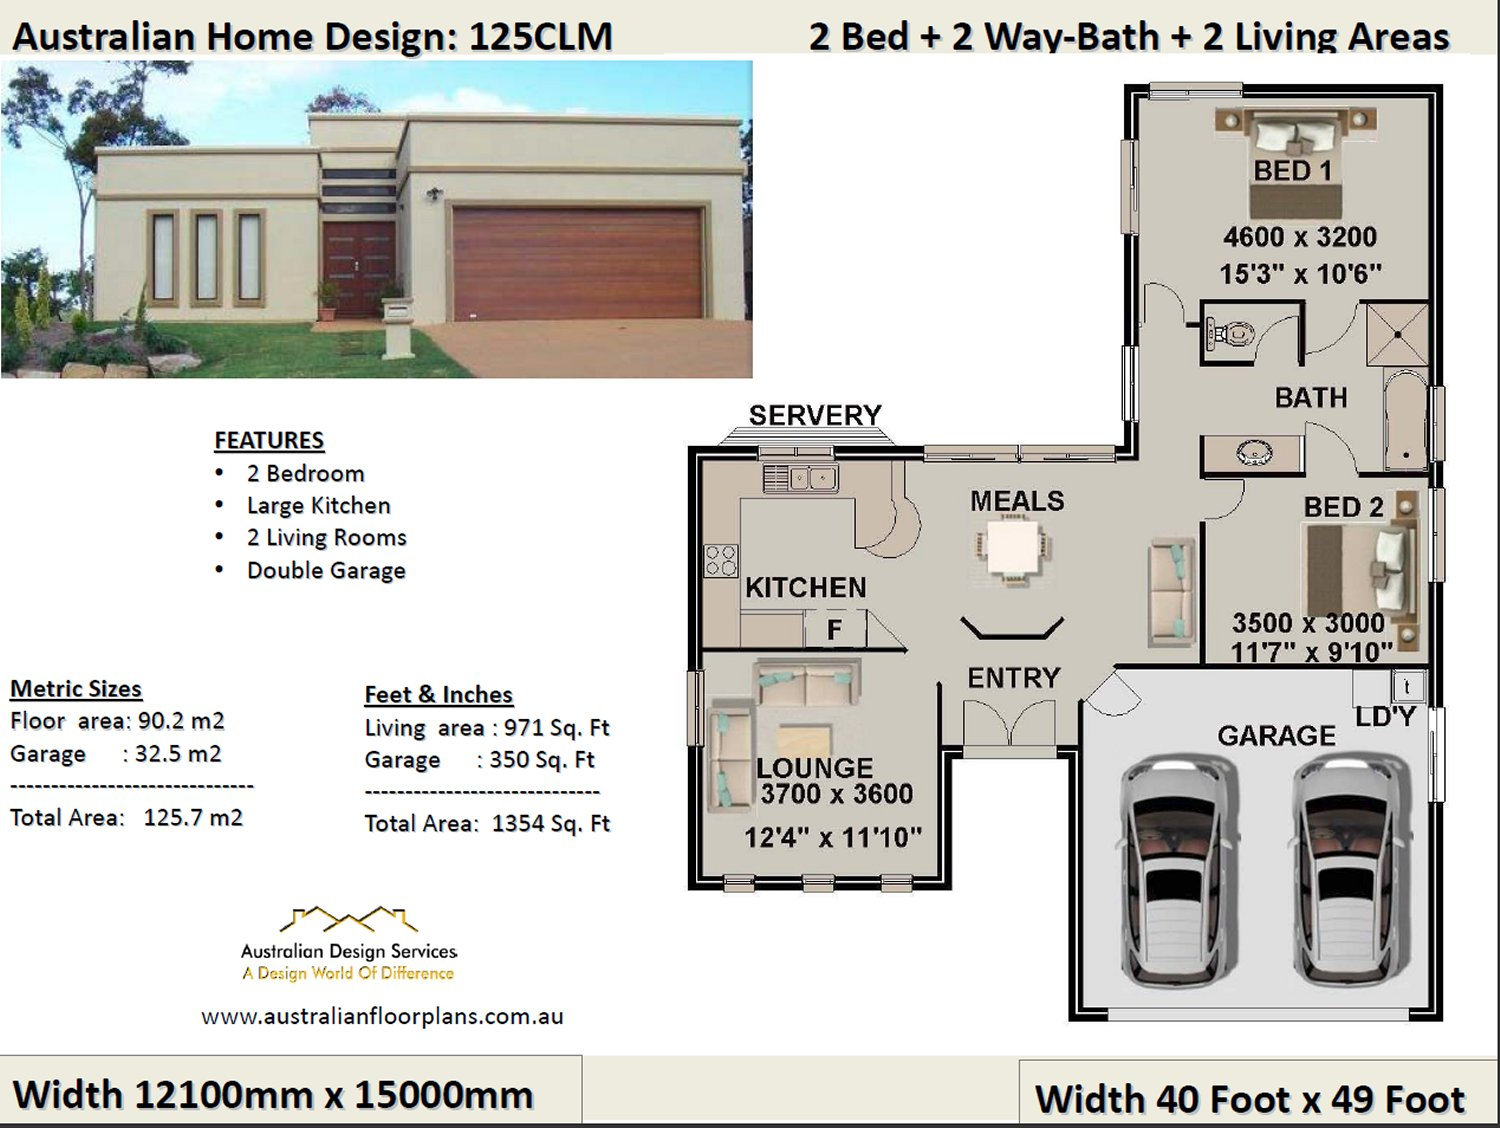 2 Bedroom 2 Car Garage House Plan Small 2 Bed Floor Plan Modern Home Design 2 Bed House Design 2 Bed House Plans Australia For Sale intended for 15 Smart Initiatives of How to Makeover 2 Bedroom Modern House Plans